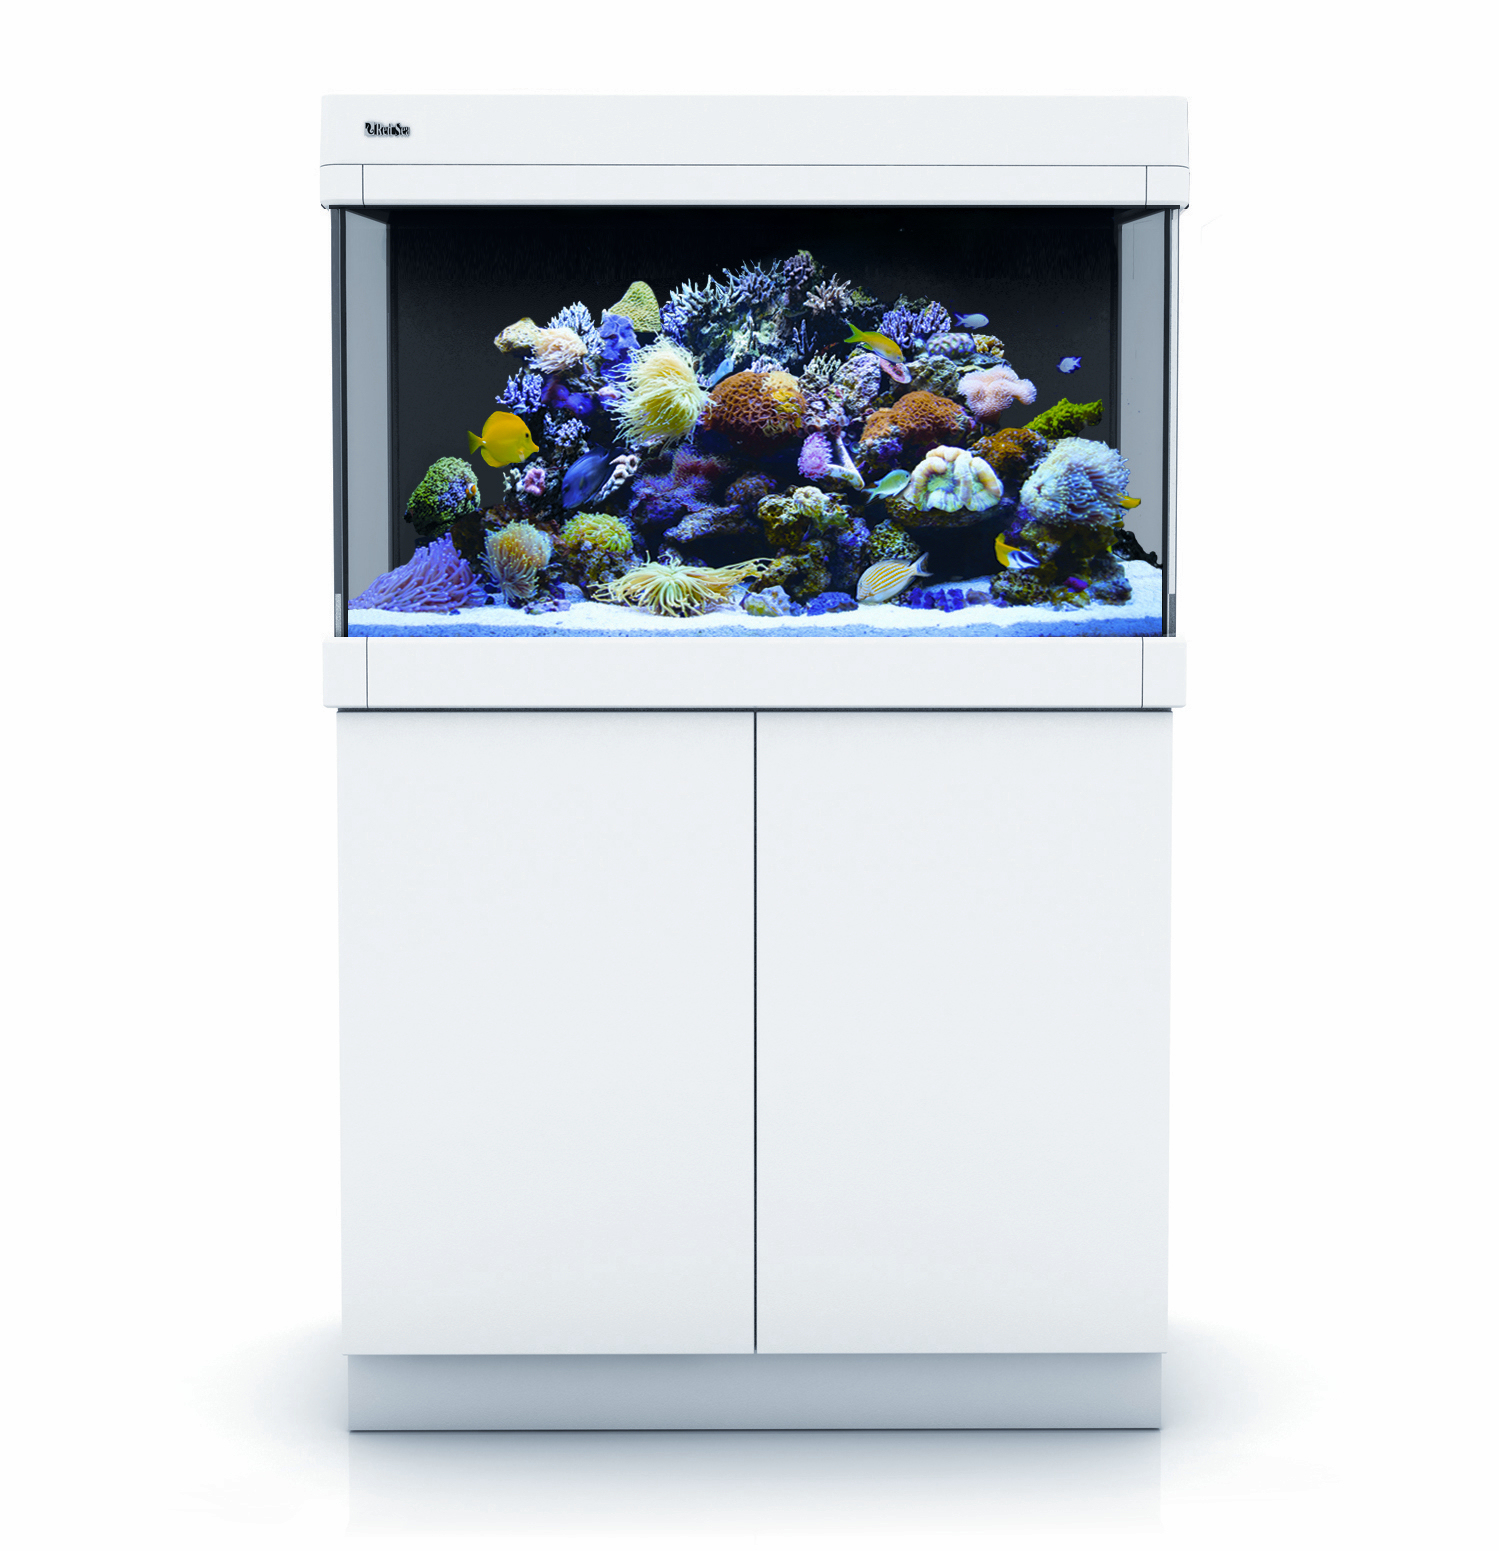 Aquariums red sea red sea max c 250 complet aqua meuble for Aquarium recifal complet